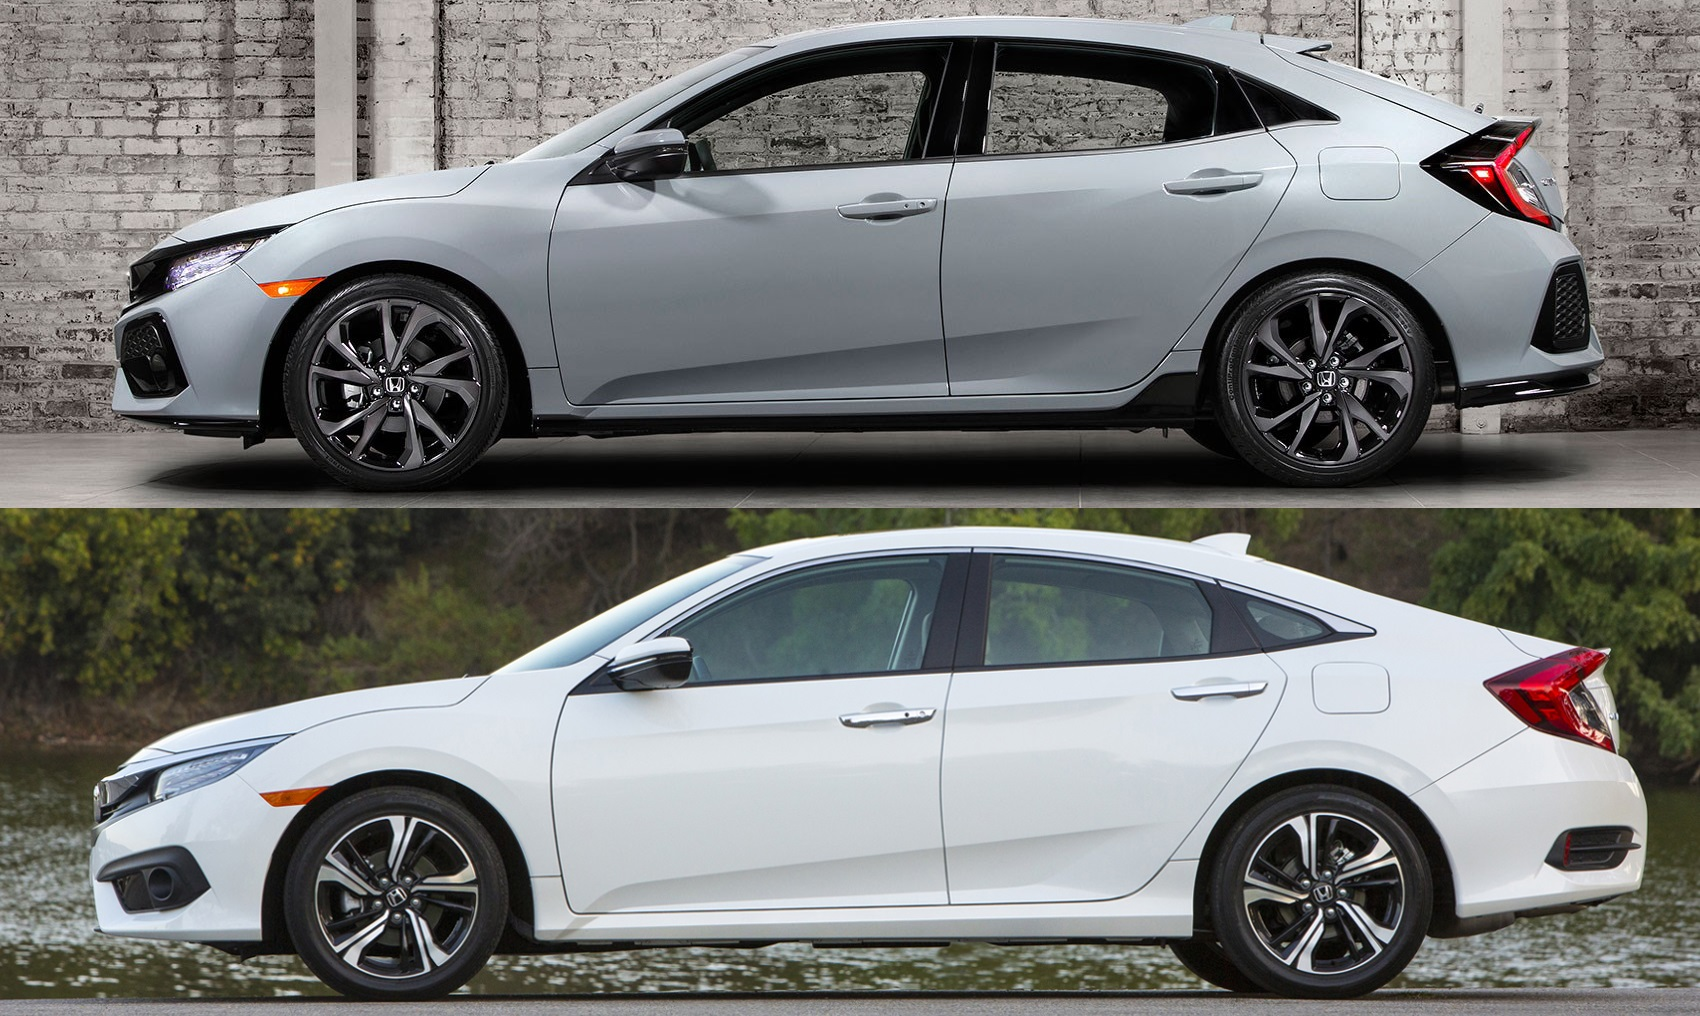 civic_side_sedan_comparison.jpg